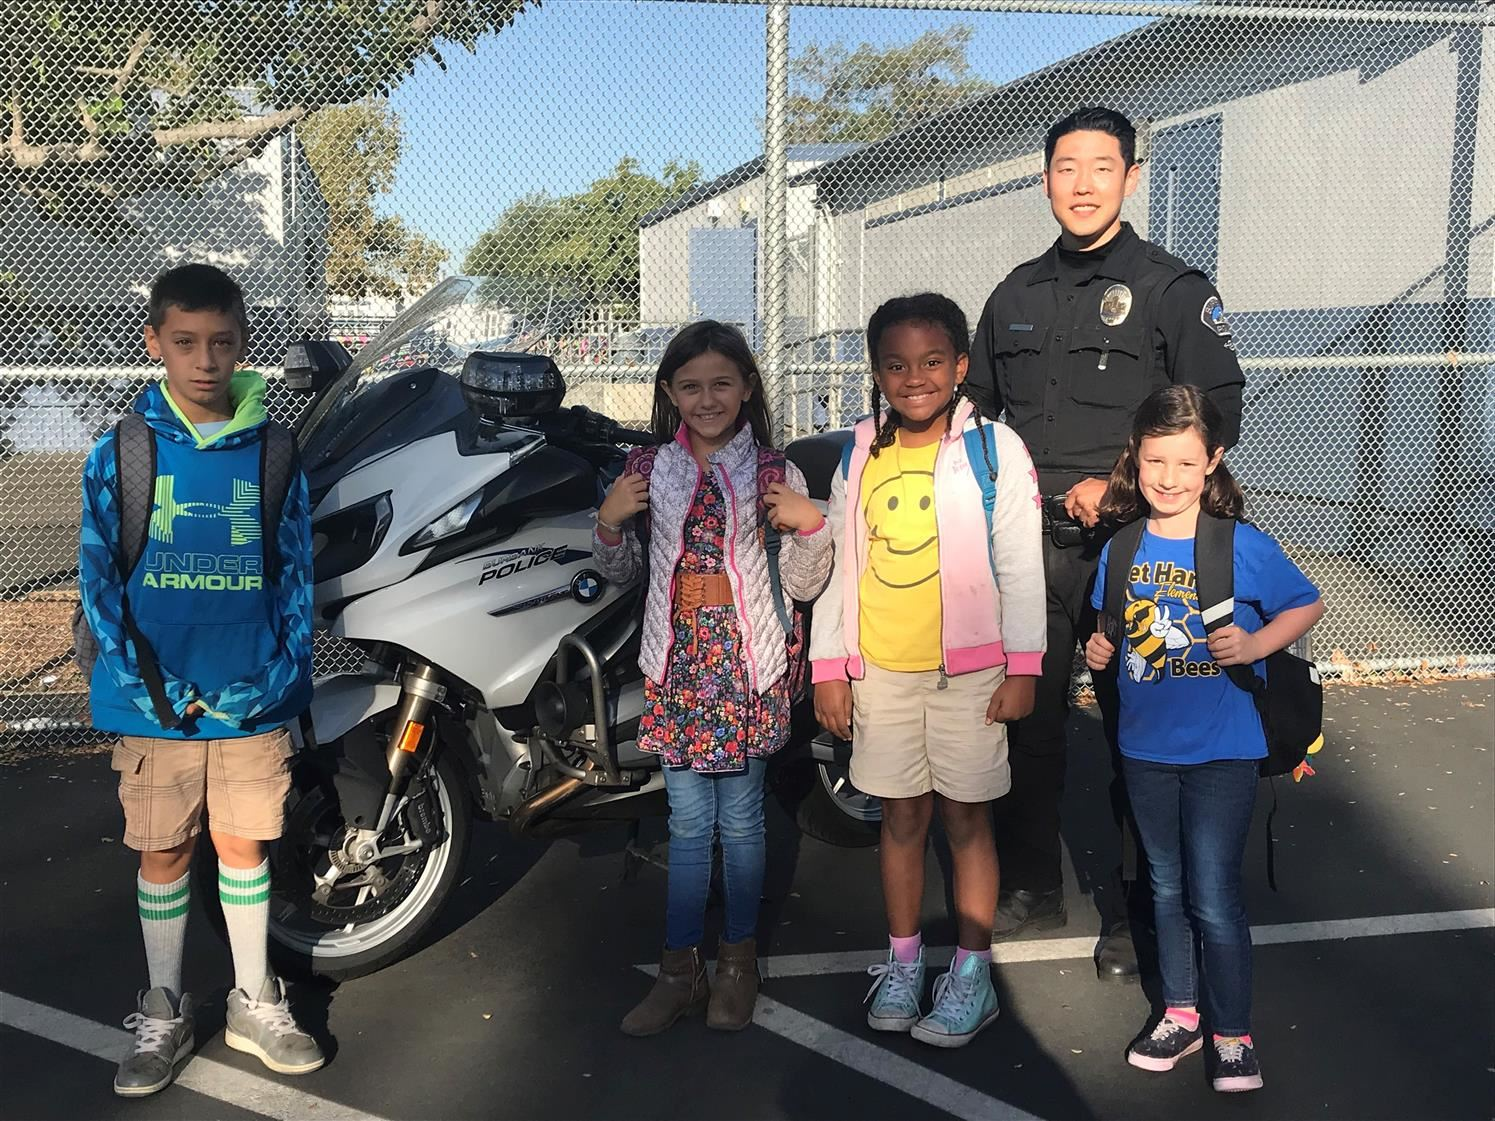 Burbank police officer with students from Bret Harte Elementary.